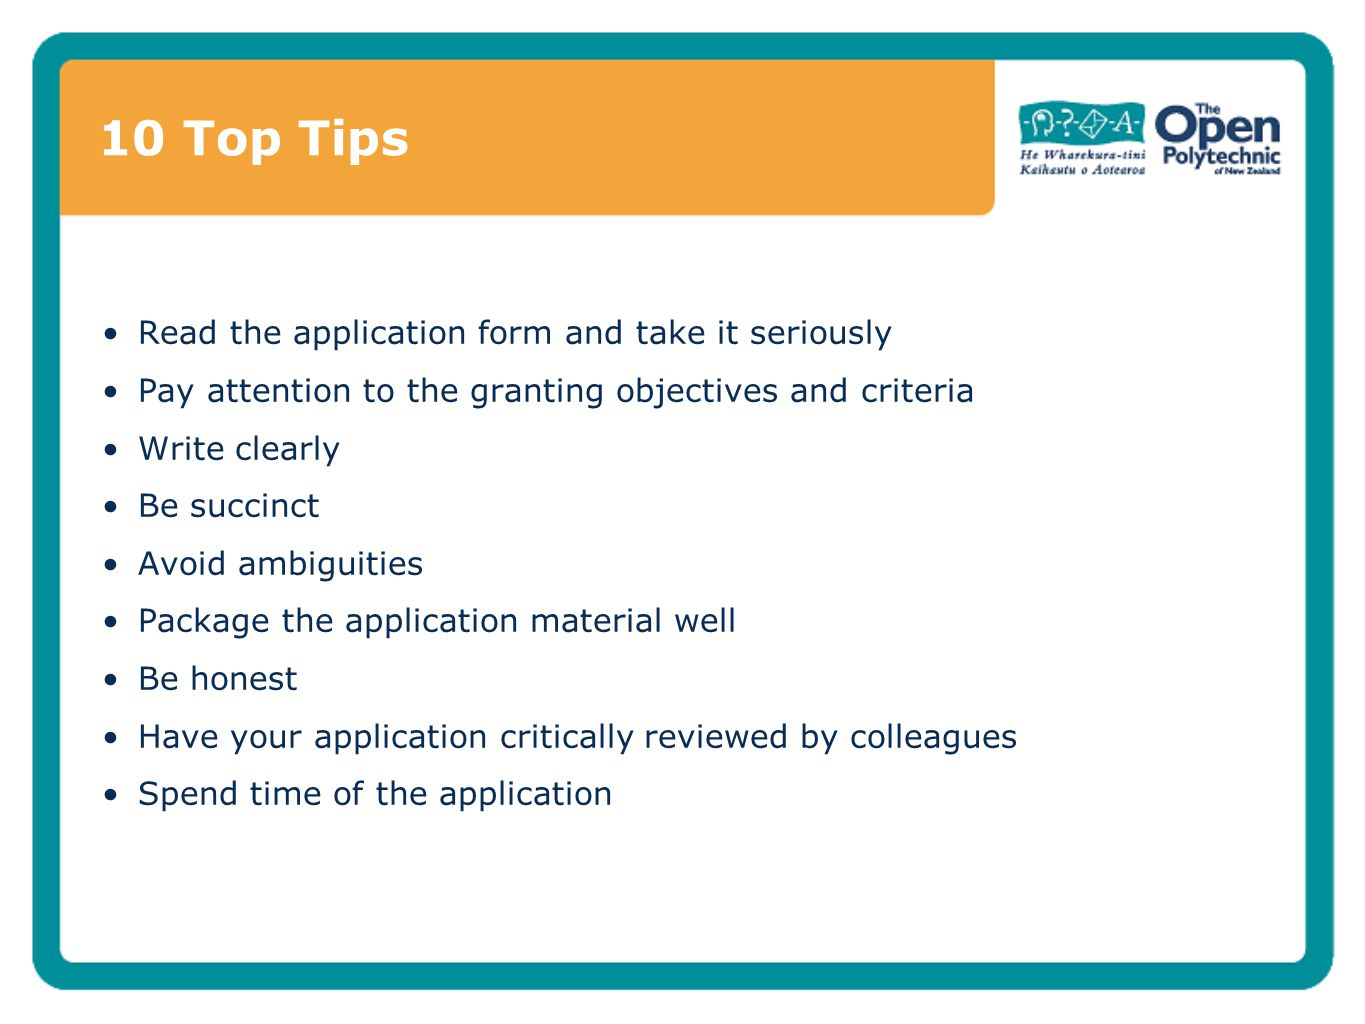 10 Top Tips Read the application form and take it seriously Pay attention to the granting objectives and criteria Write clearly Be succinct Avoid ambiguities Package the application material well Be honest Have your application critically reviewed by colleagues Spend time of the application